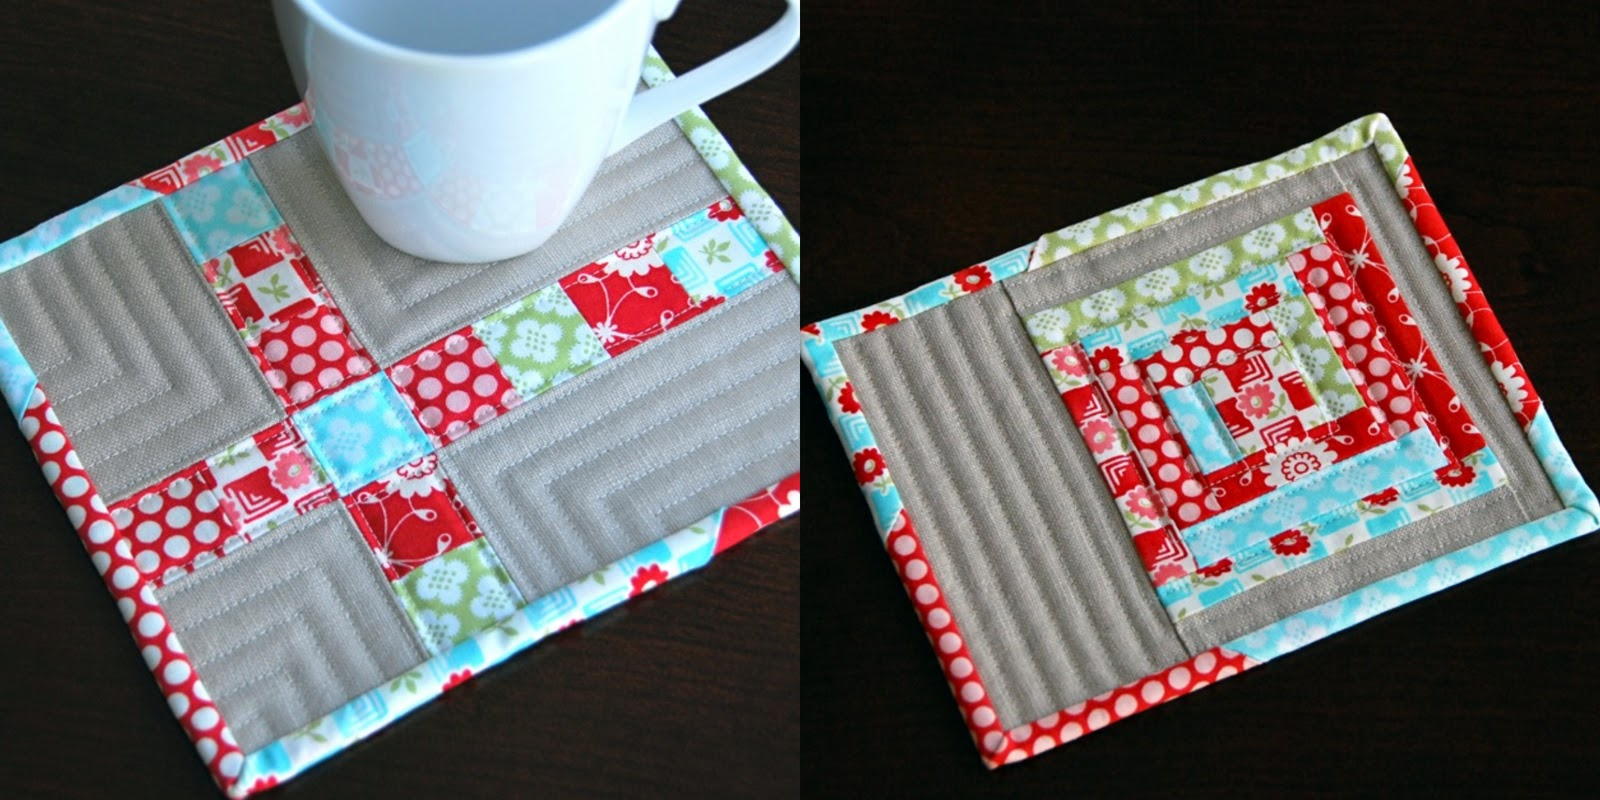 Pin Sew Press Another Mug Rug And Tips For Sewing With Linen